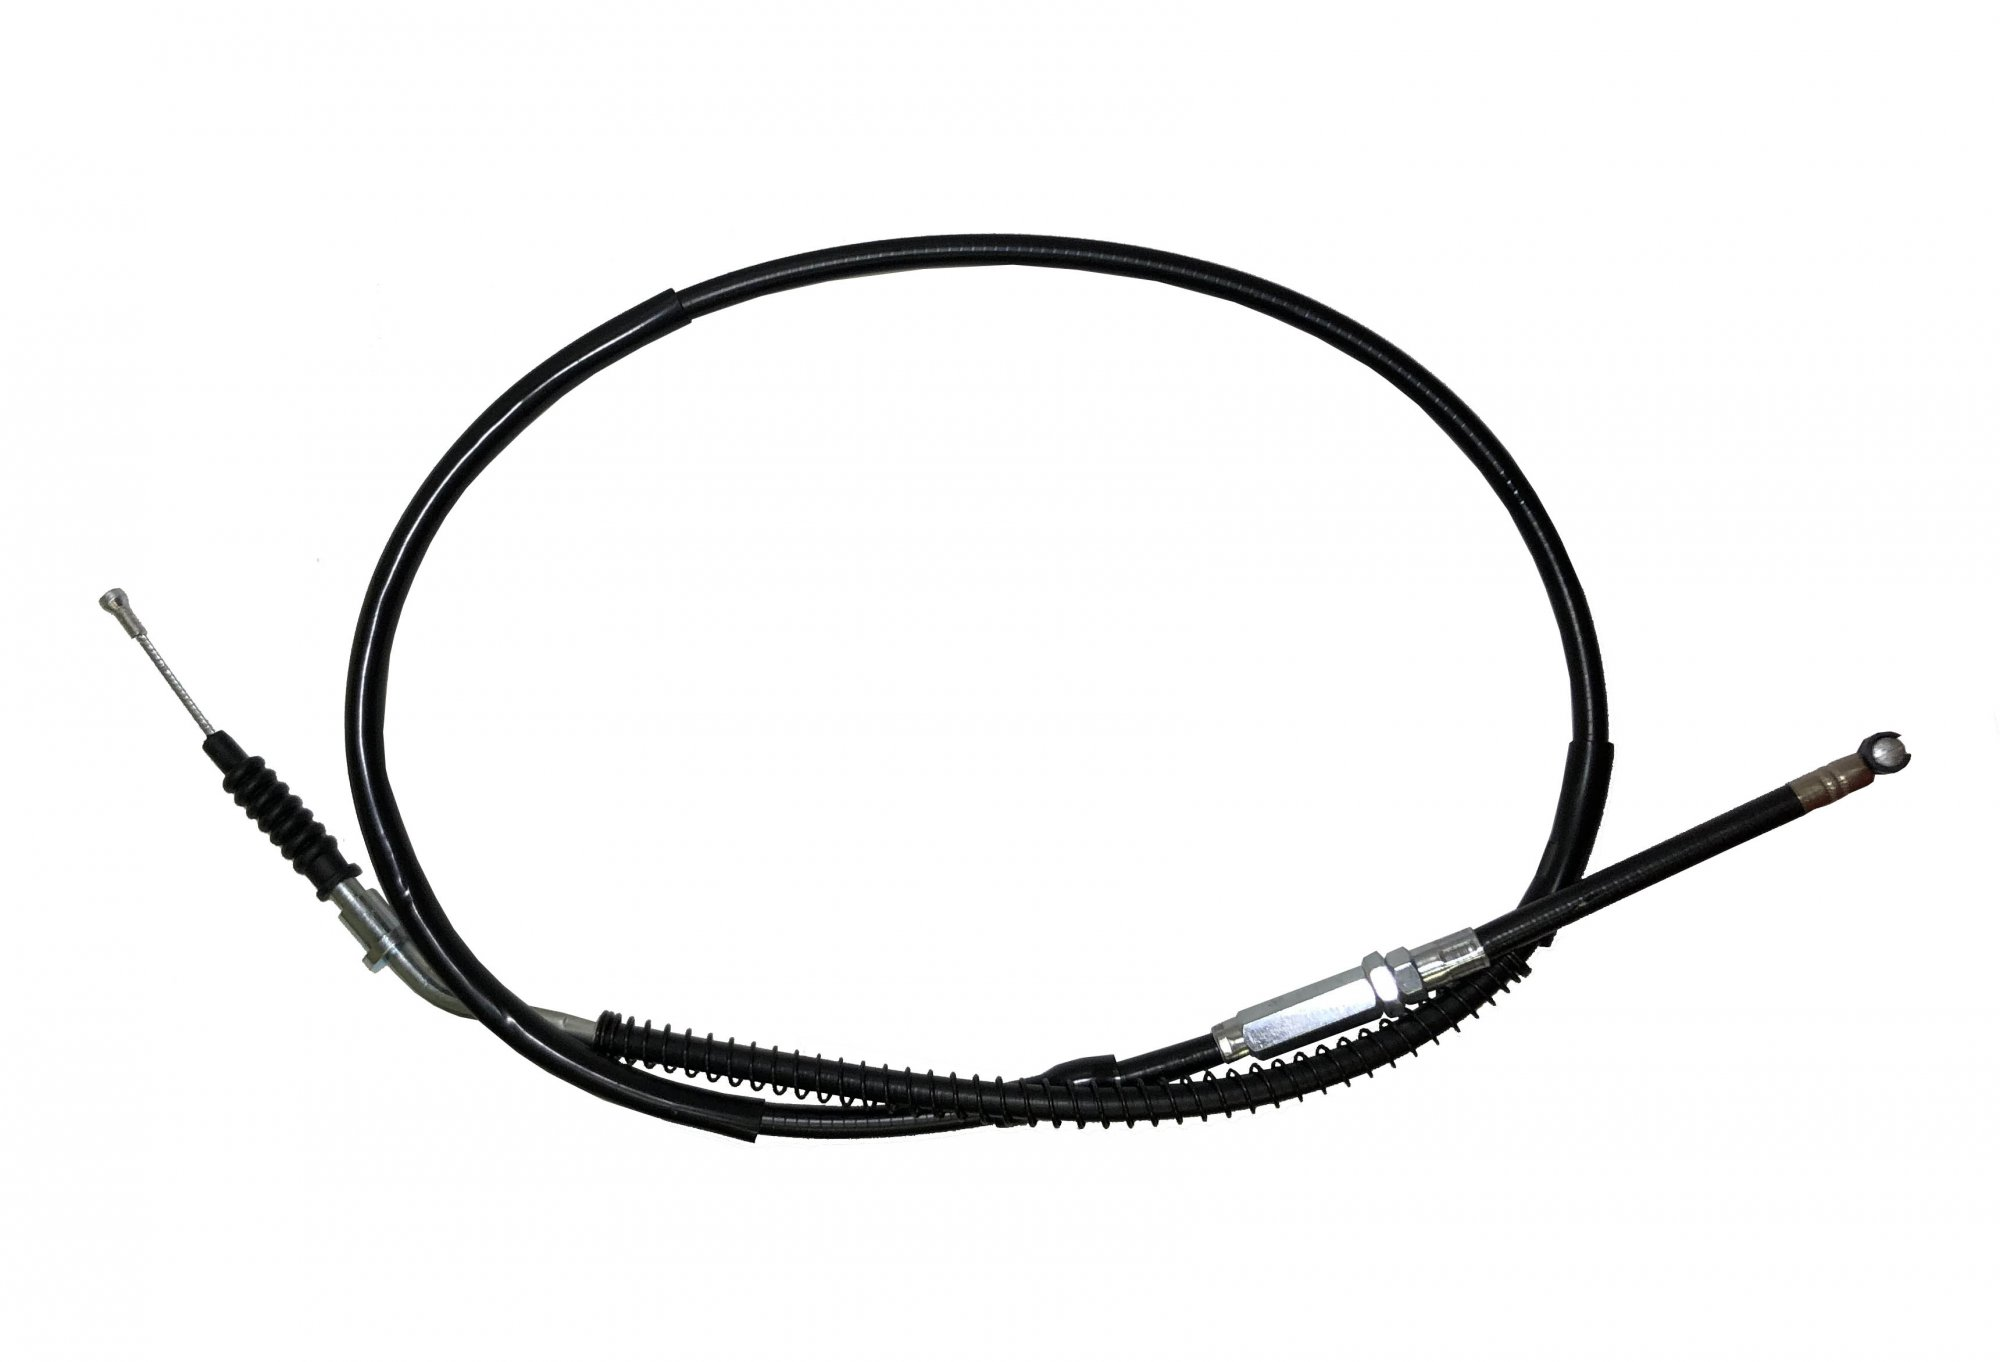 Yamaha Dt175 Brand New Clutch Cable 12 019